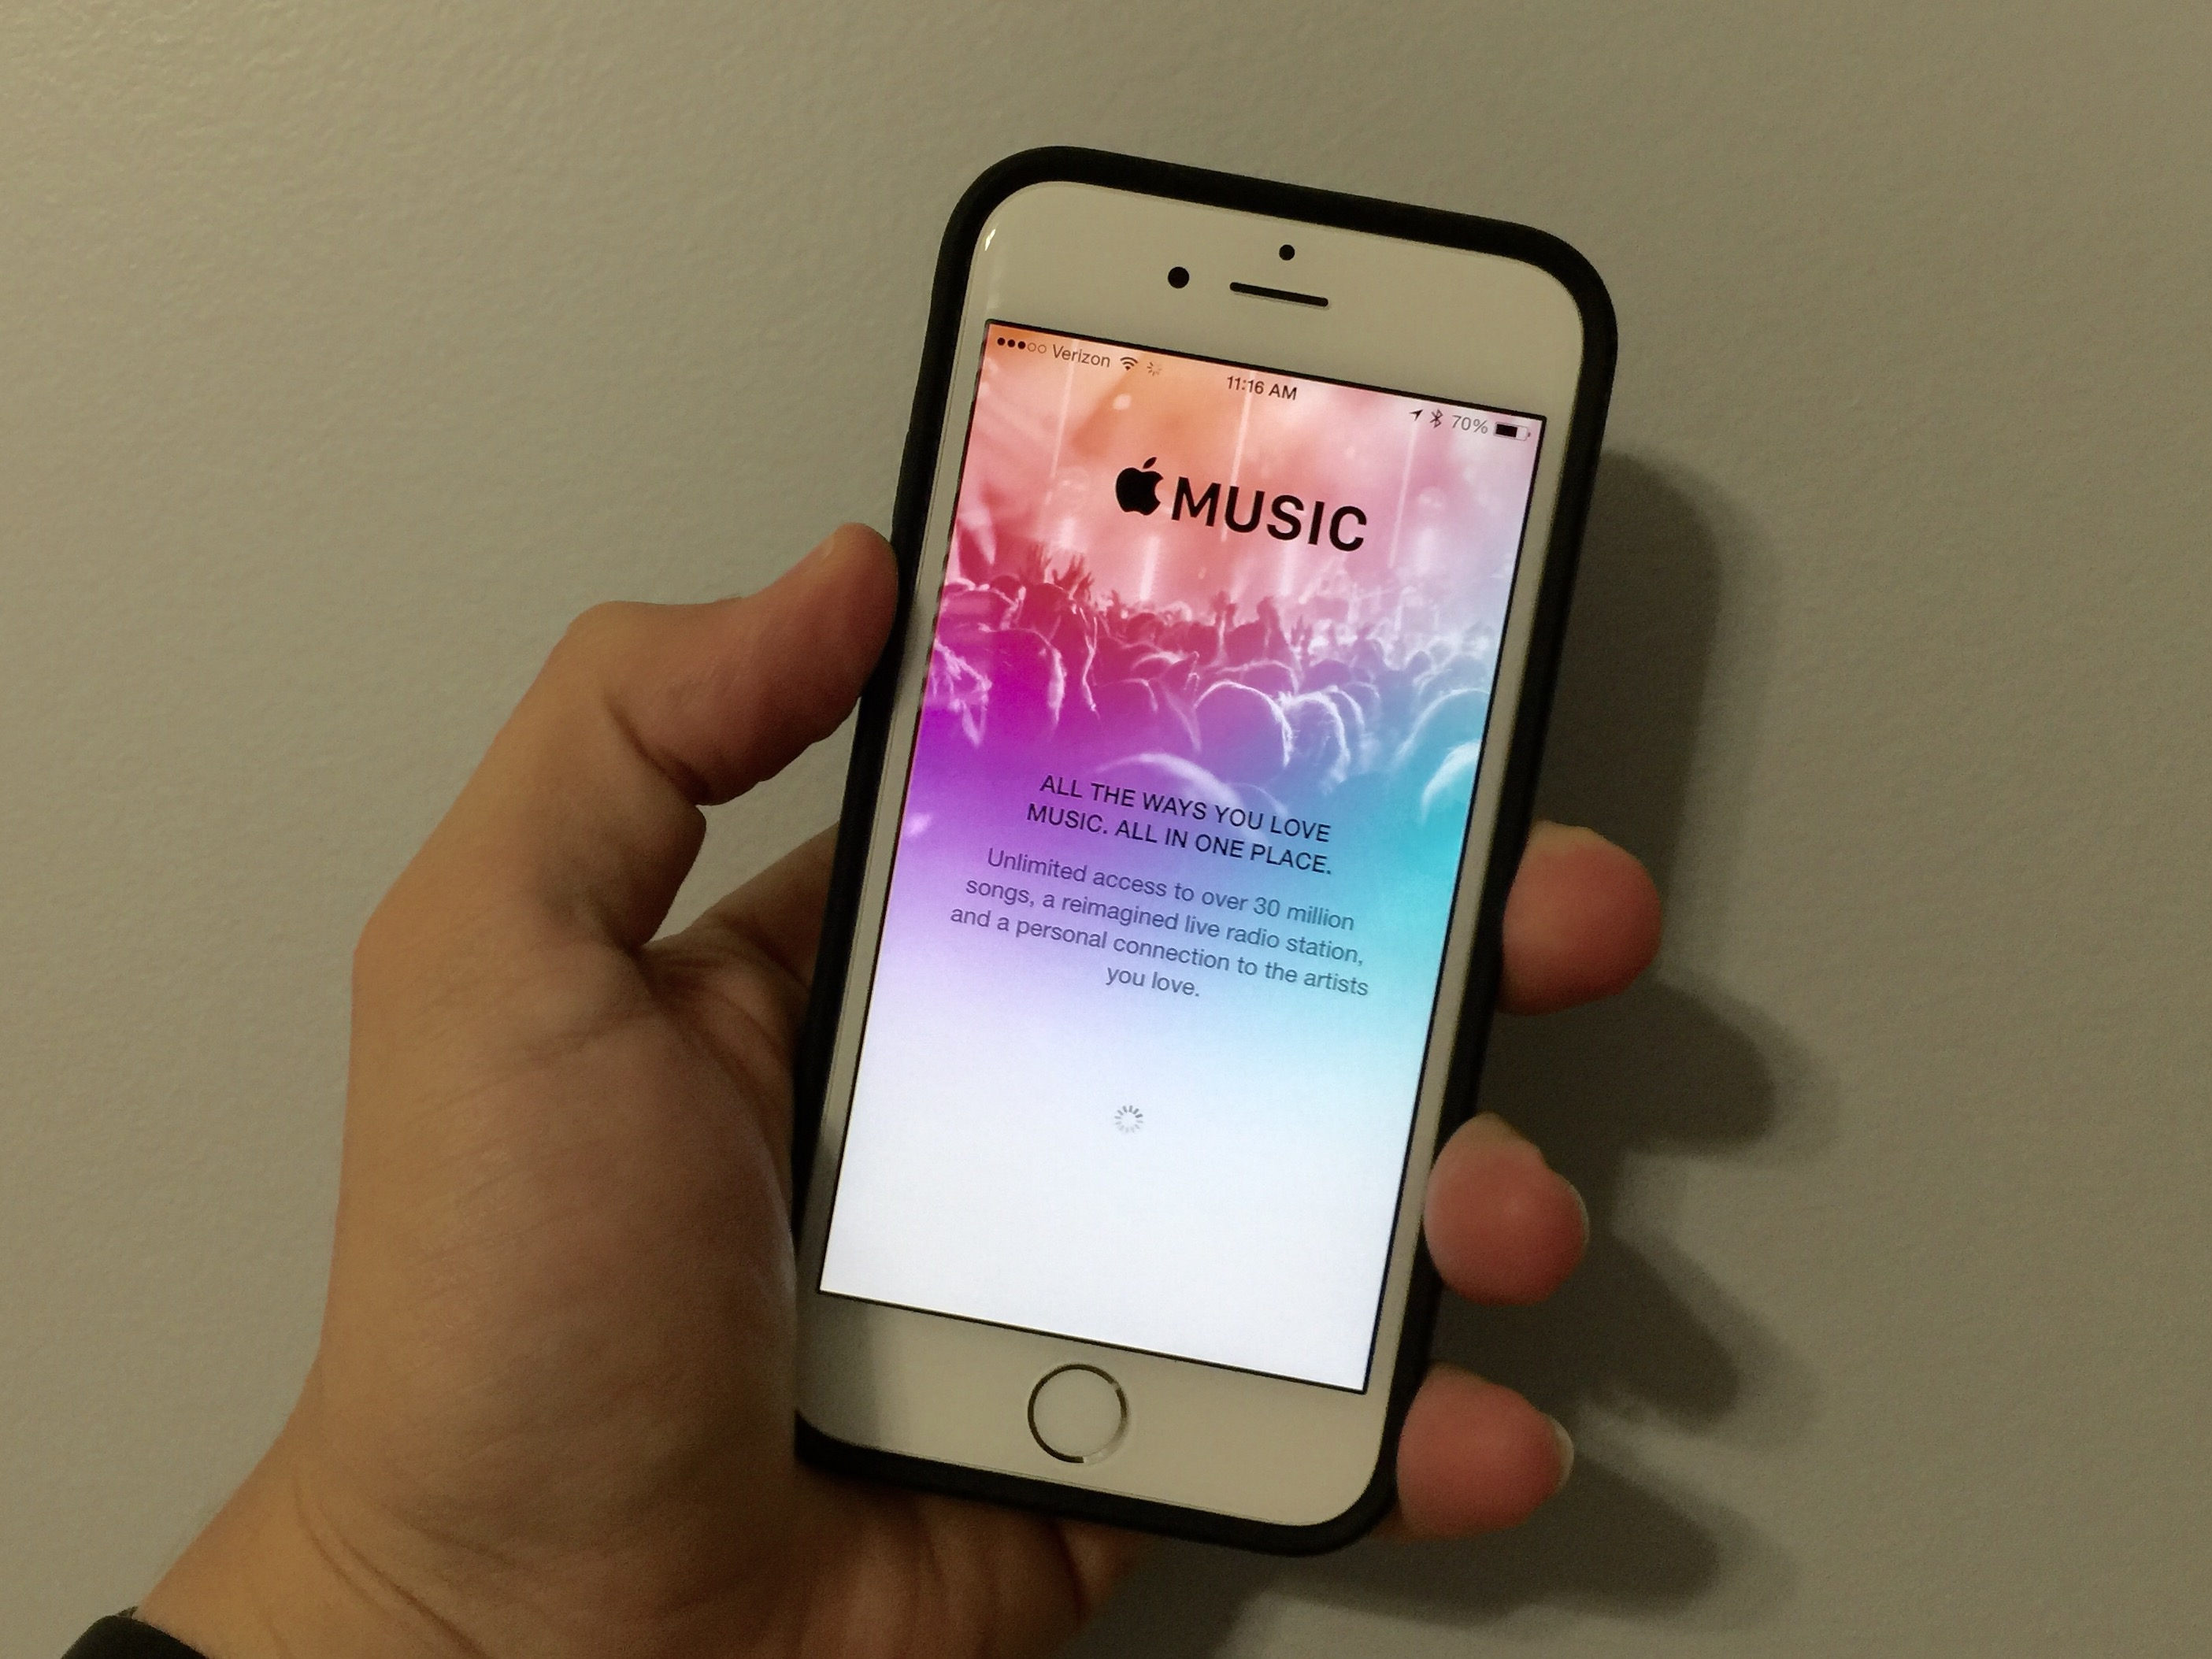 iOS 8.4 iPhone 4s Reviews: Should You Install iOS 8.4?